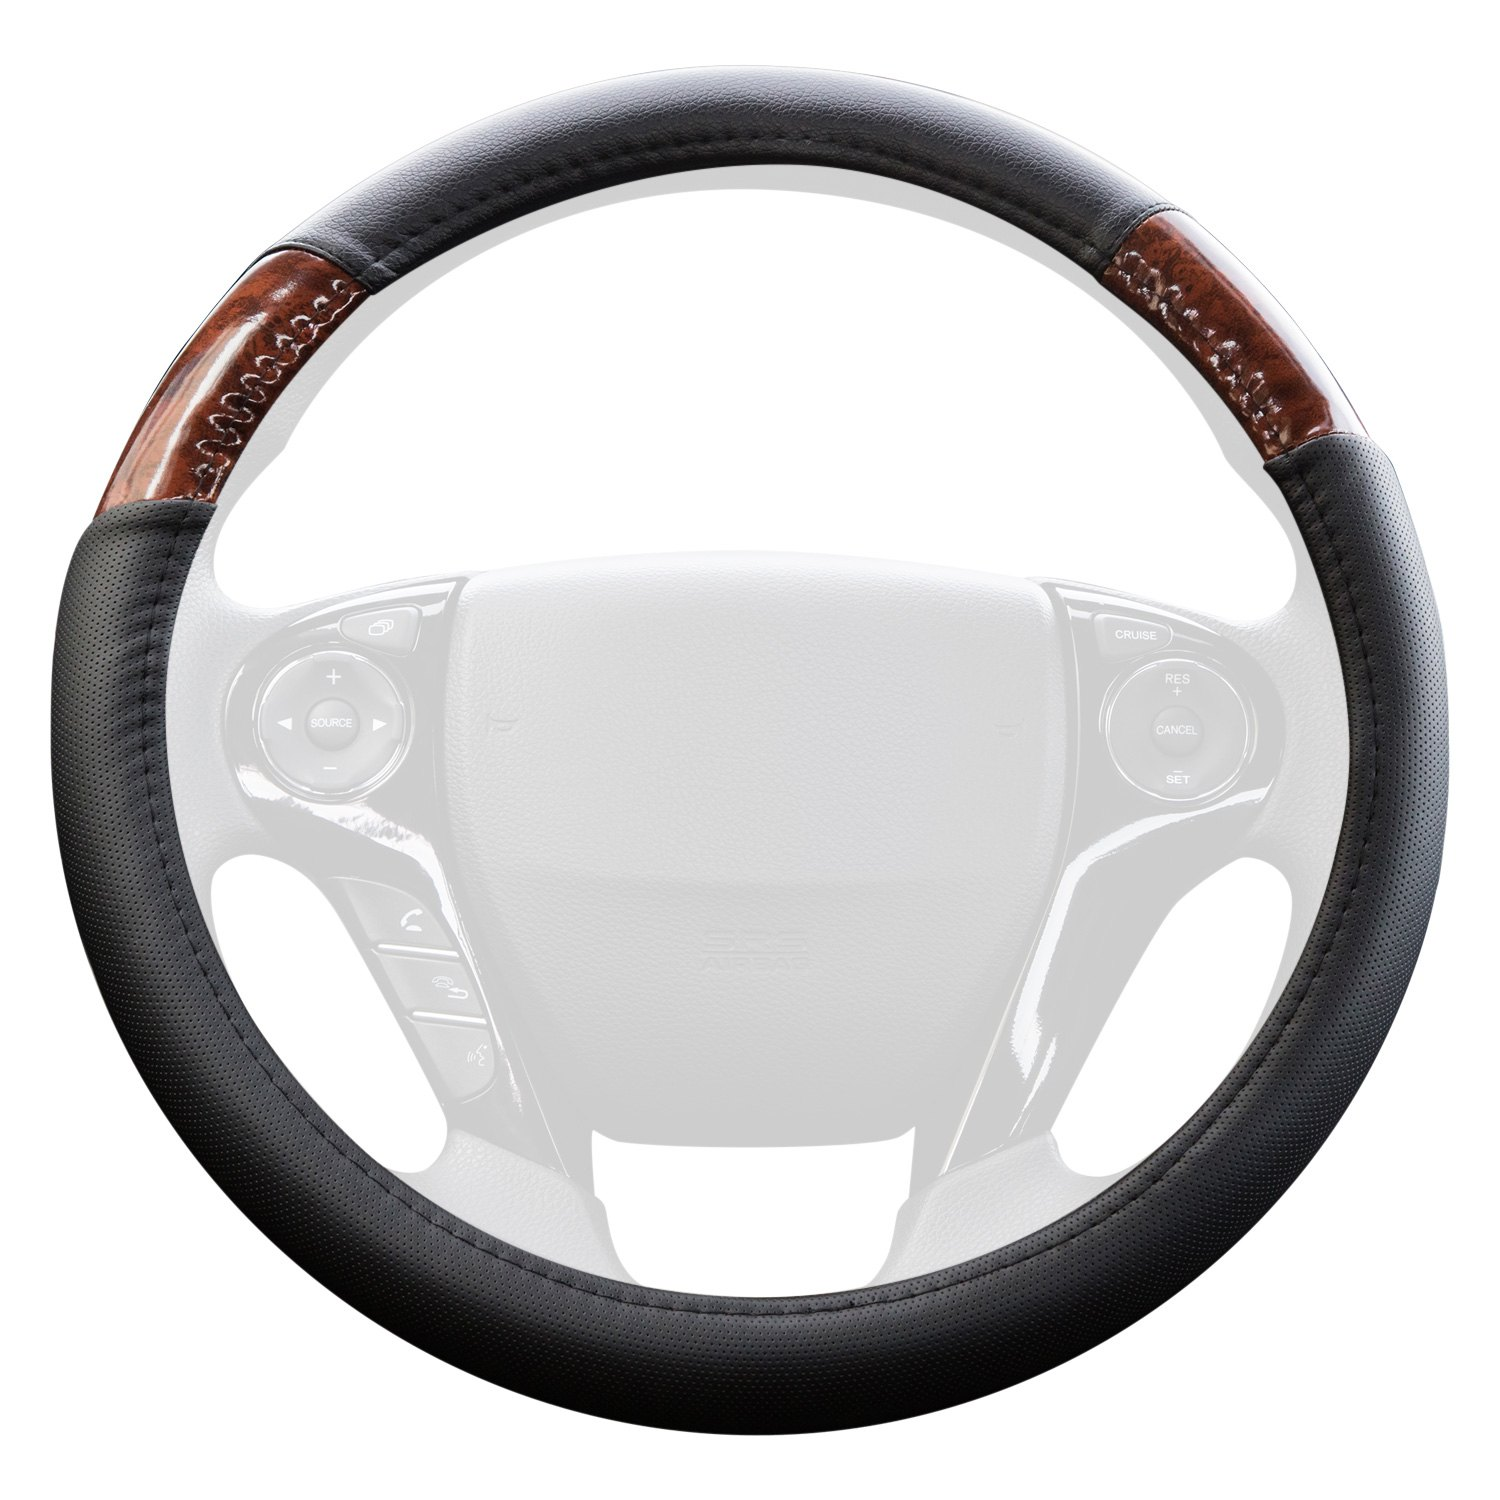 Genuine leather steering wheel cover - the perfect item to upgrade a worn or scuffed steering wheel or simply to achieve that leather steering wheel look with ease.